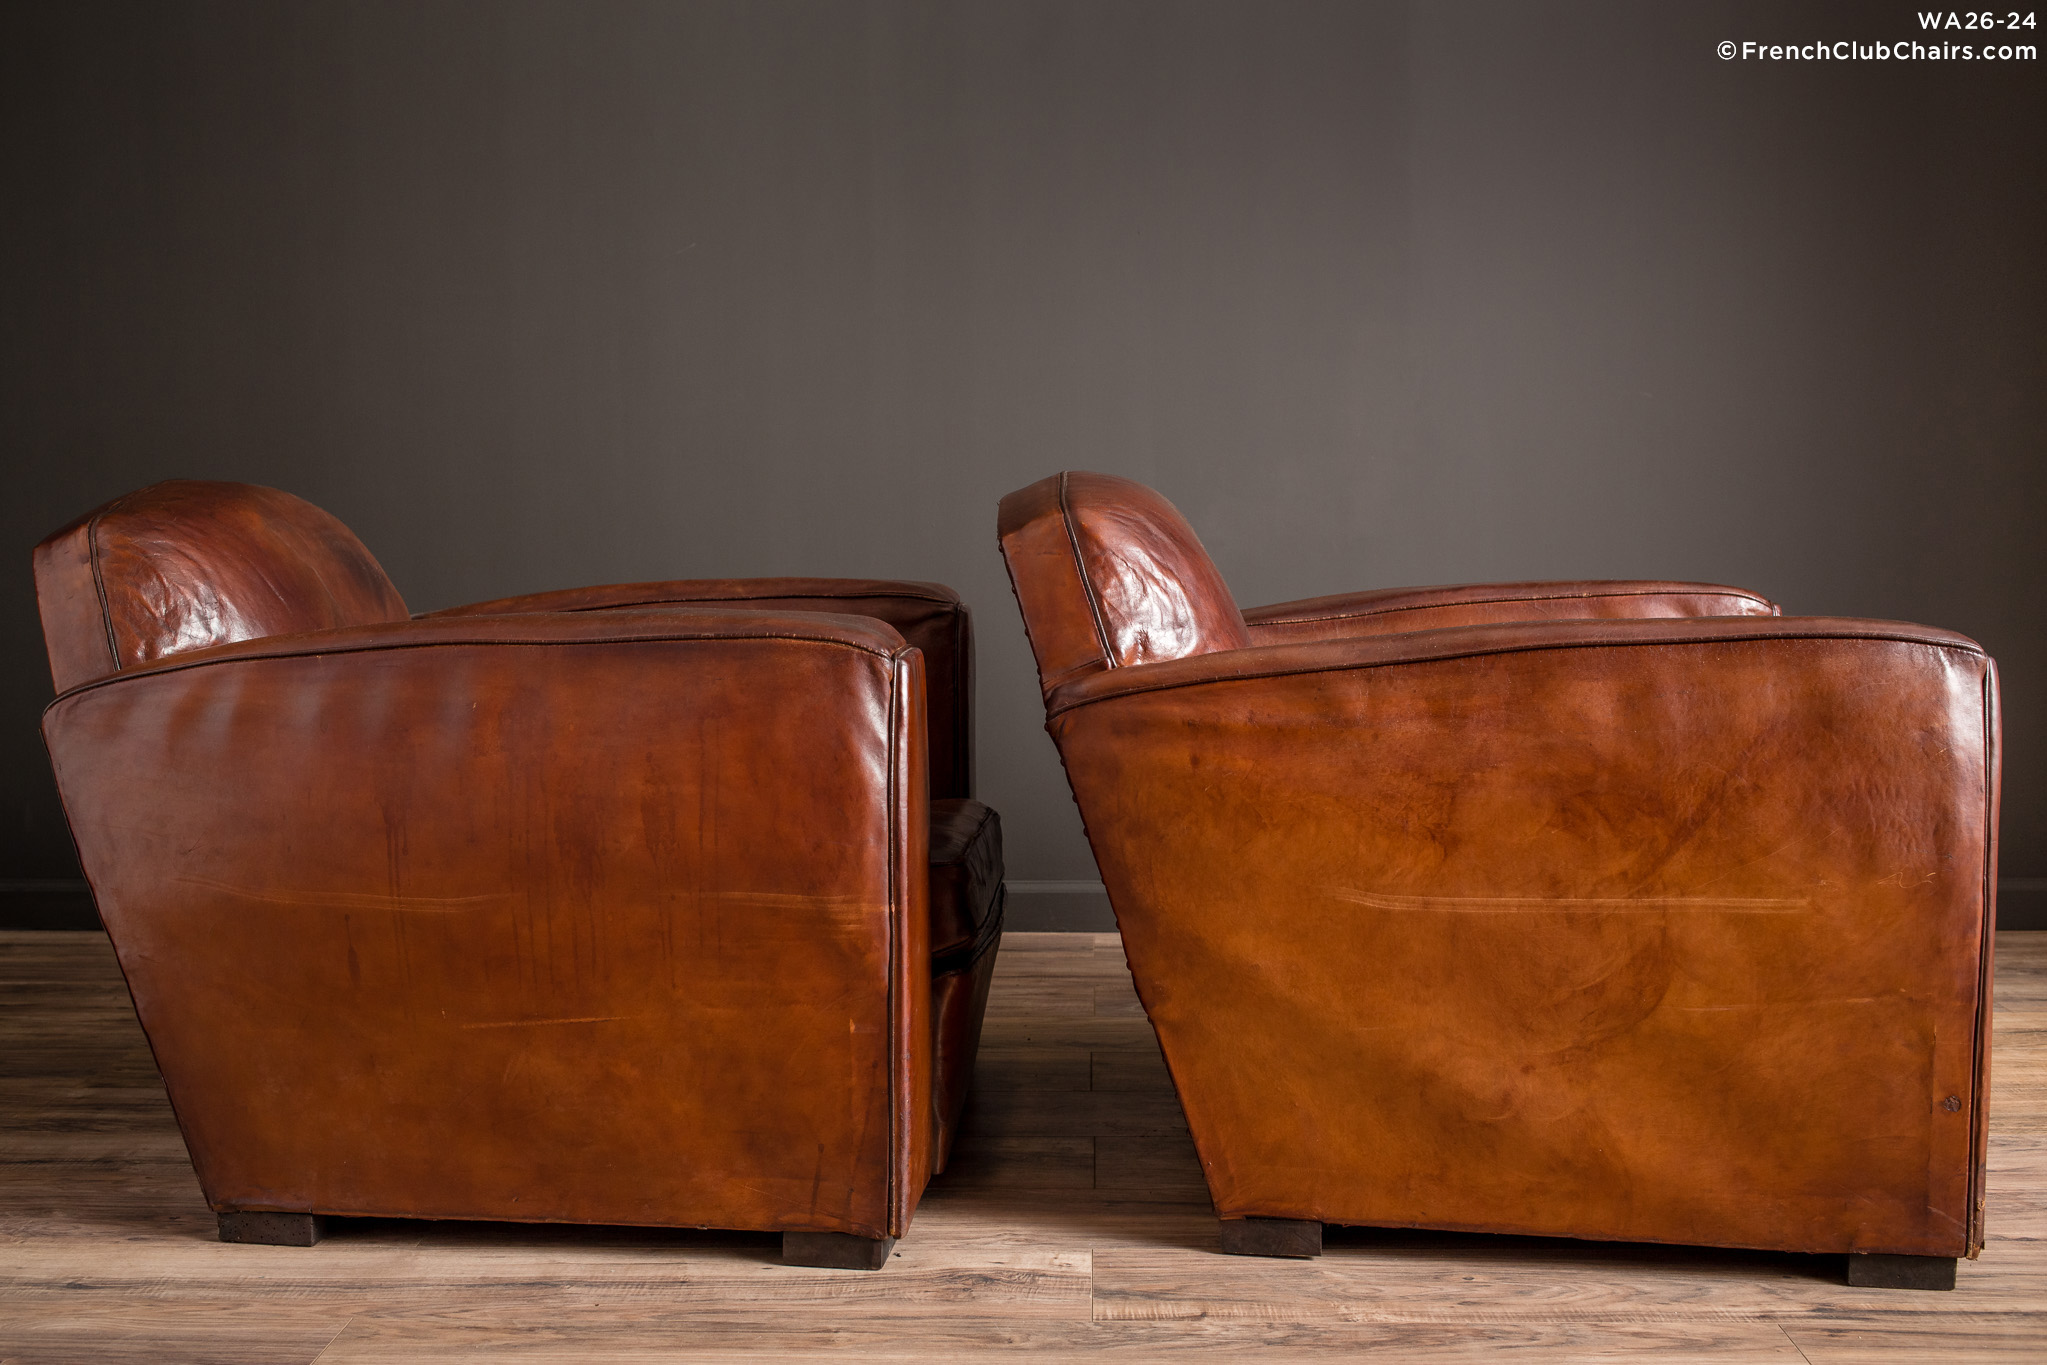 WA_26-24_Jean_Moulin_1920s_Lounge_Pair_R_3RT-v01-williams-antiks-leather-french-club-chair-wa_fcccom